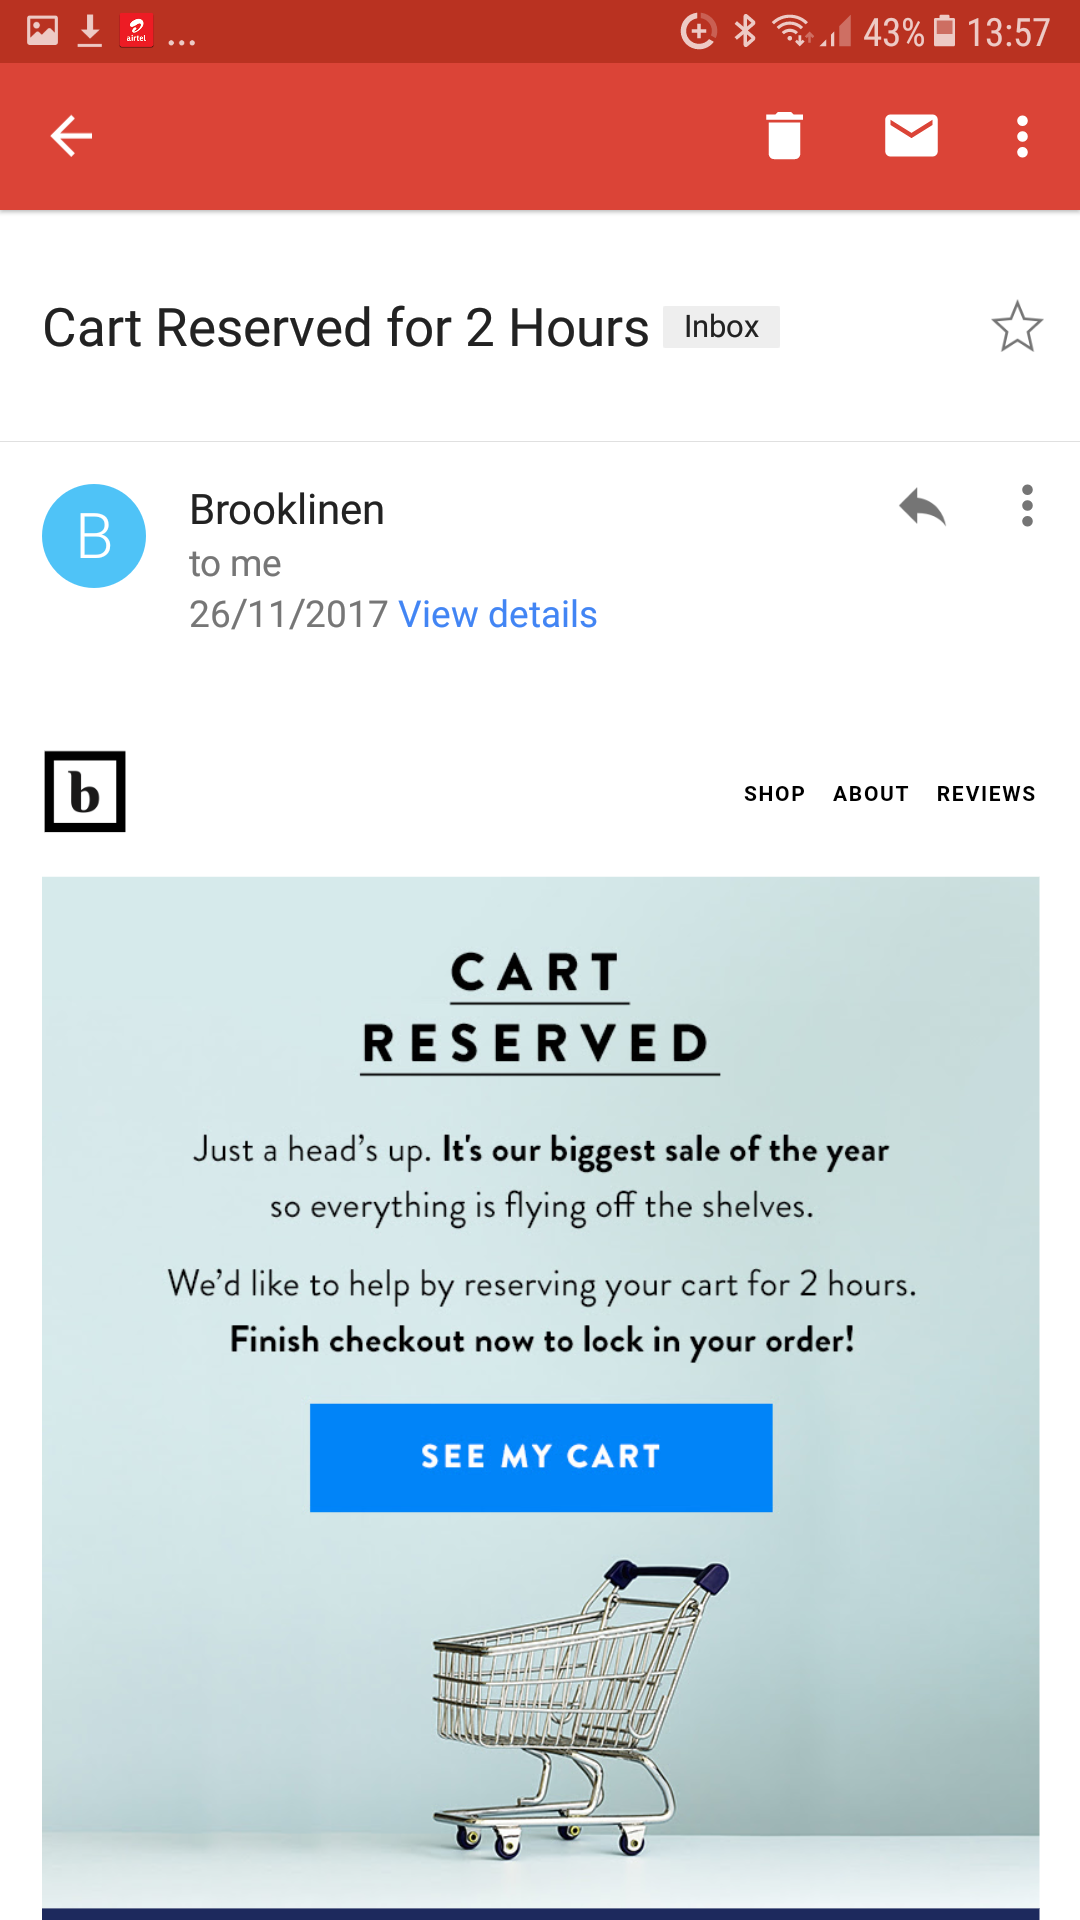 woocommerce cart abandonment - mobile optimized email